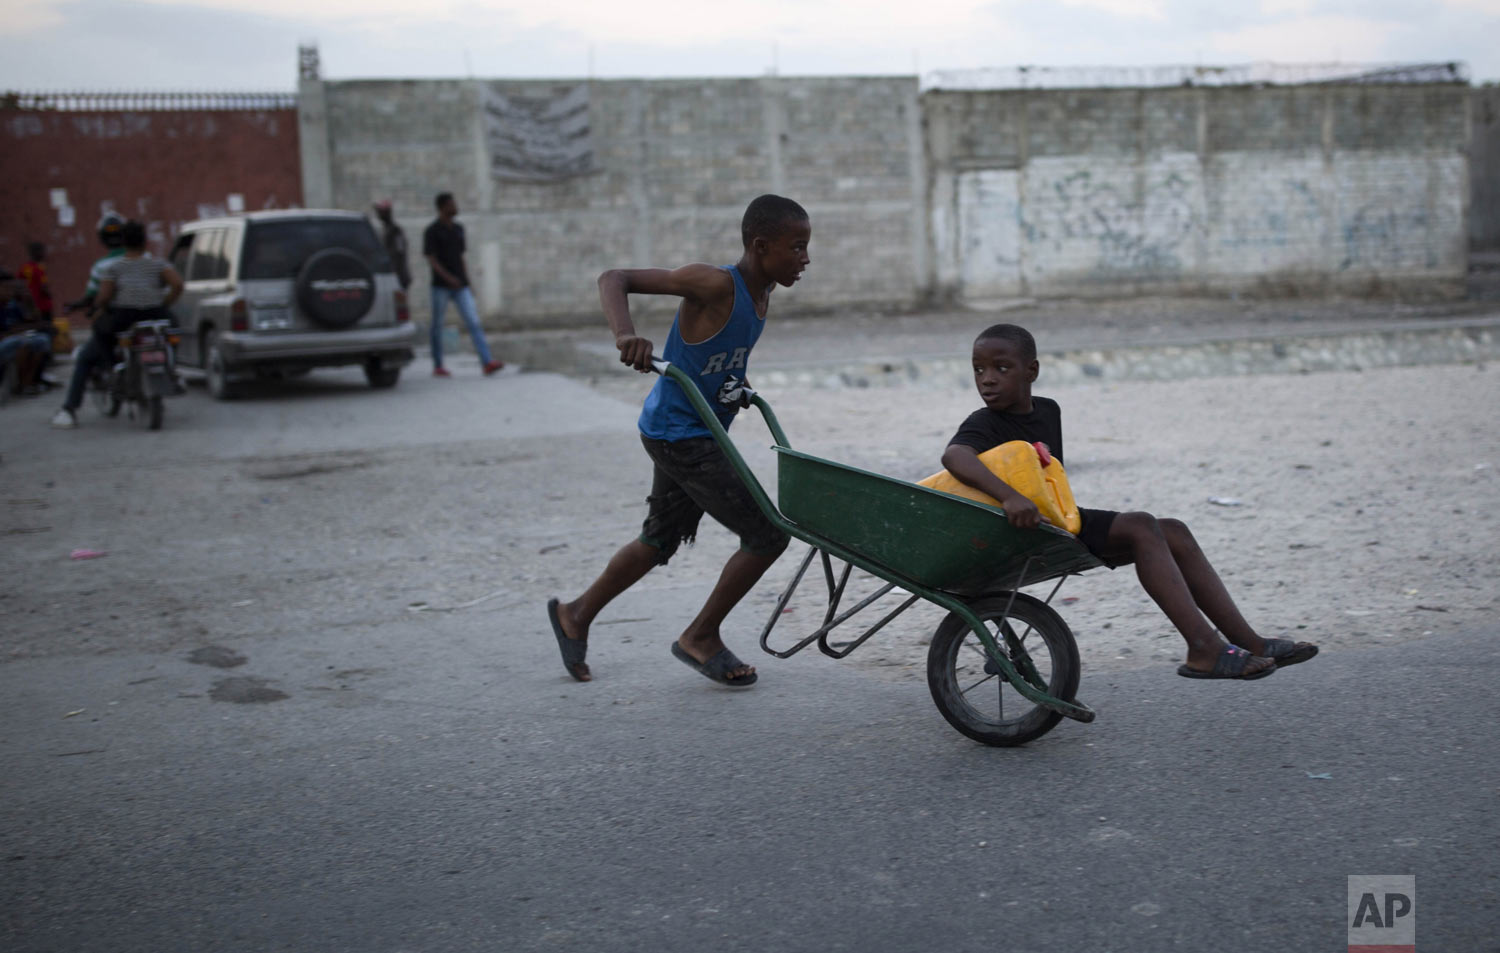 Brothers head to a public fountain with a wheelbarrow to fill their container with water to use at home to drink, cook and bathe, in the Cite Soleil slum of Port-au-Prince, Haiti, Tuesday, Dec. 18, 2018. (AP Photo/Dieu Nalio Chery)